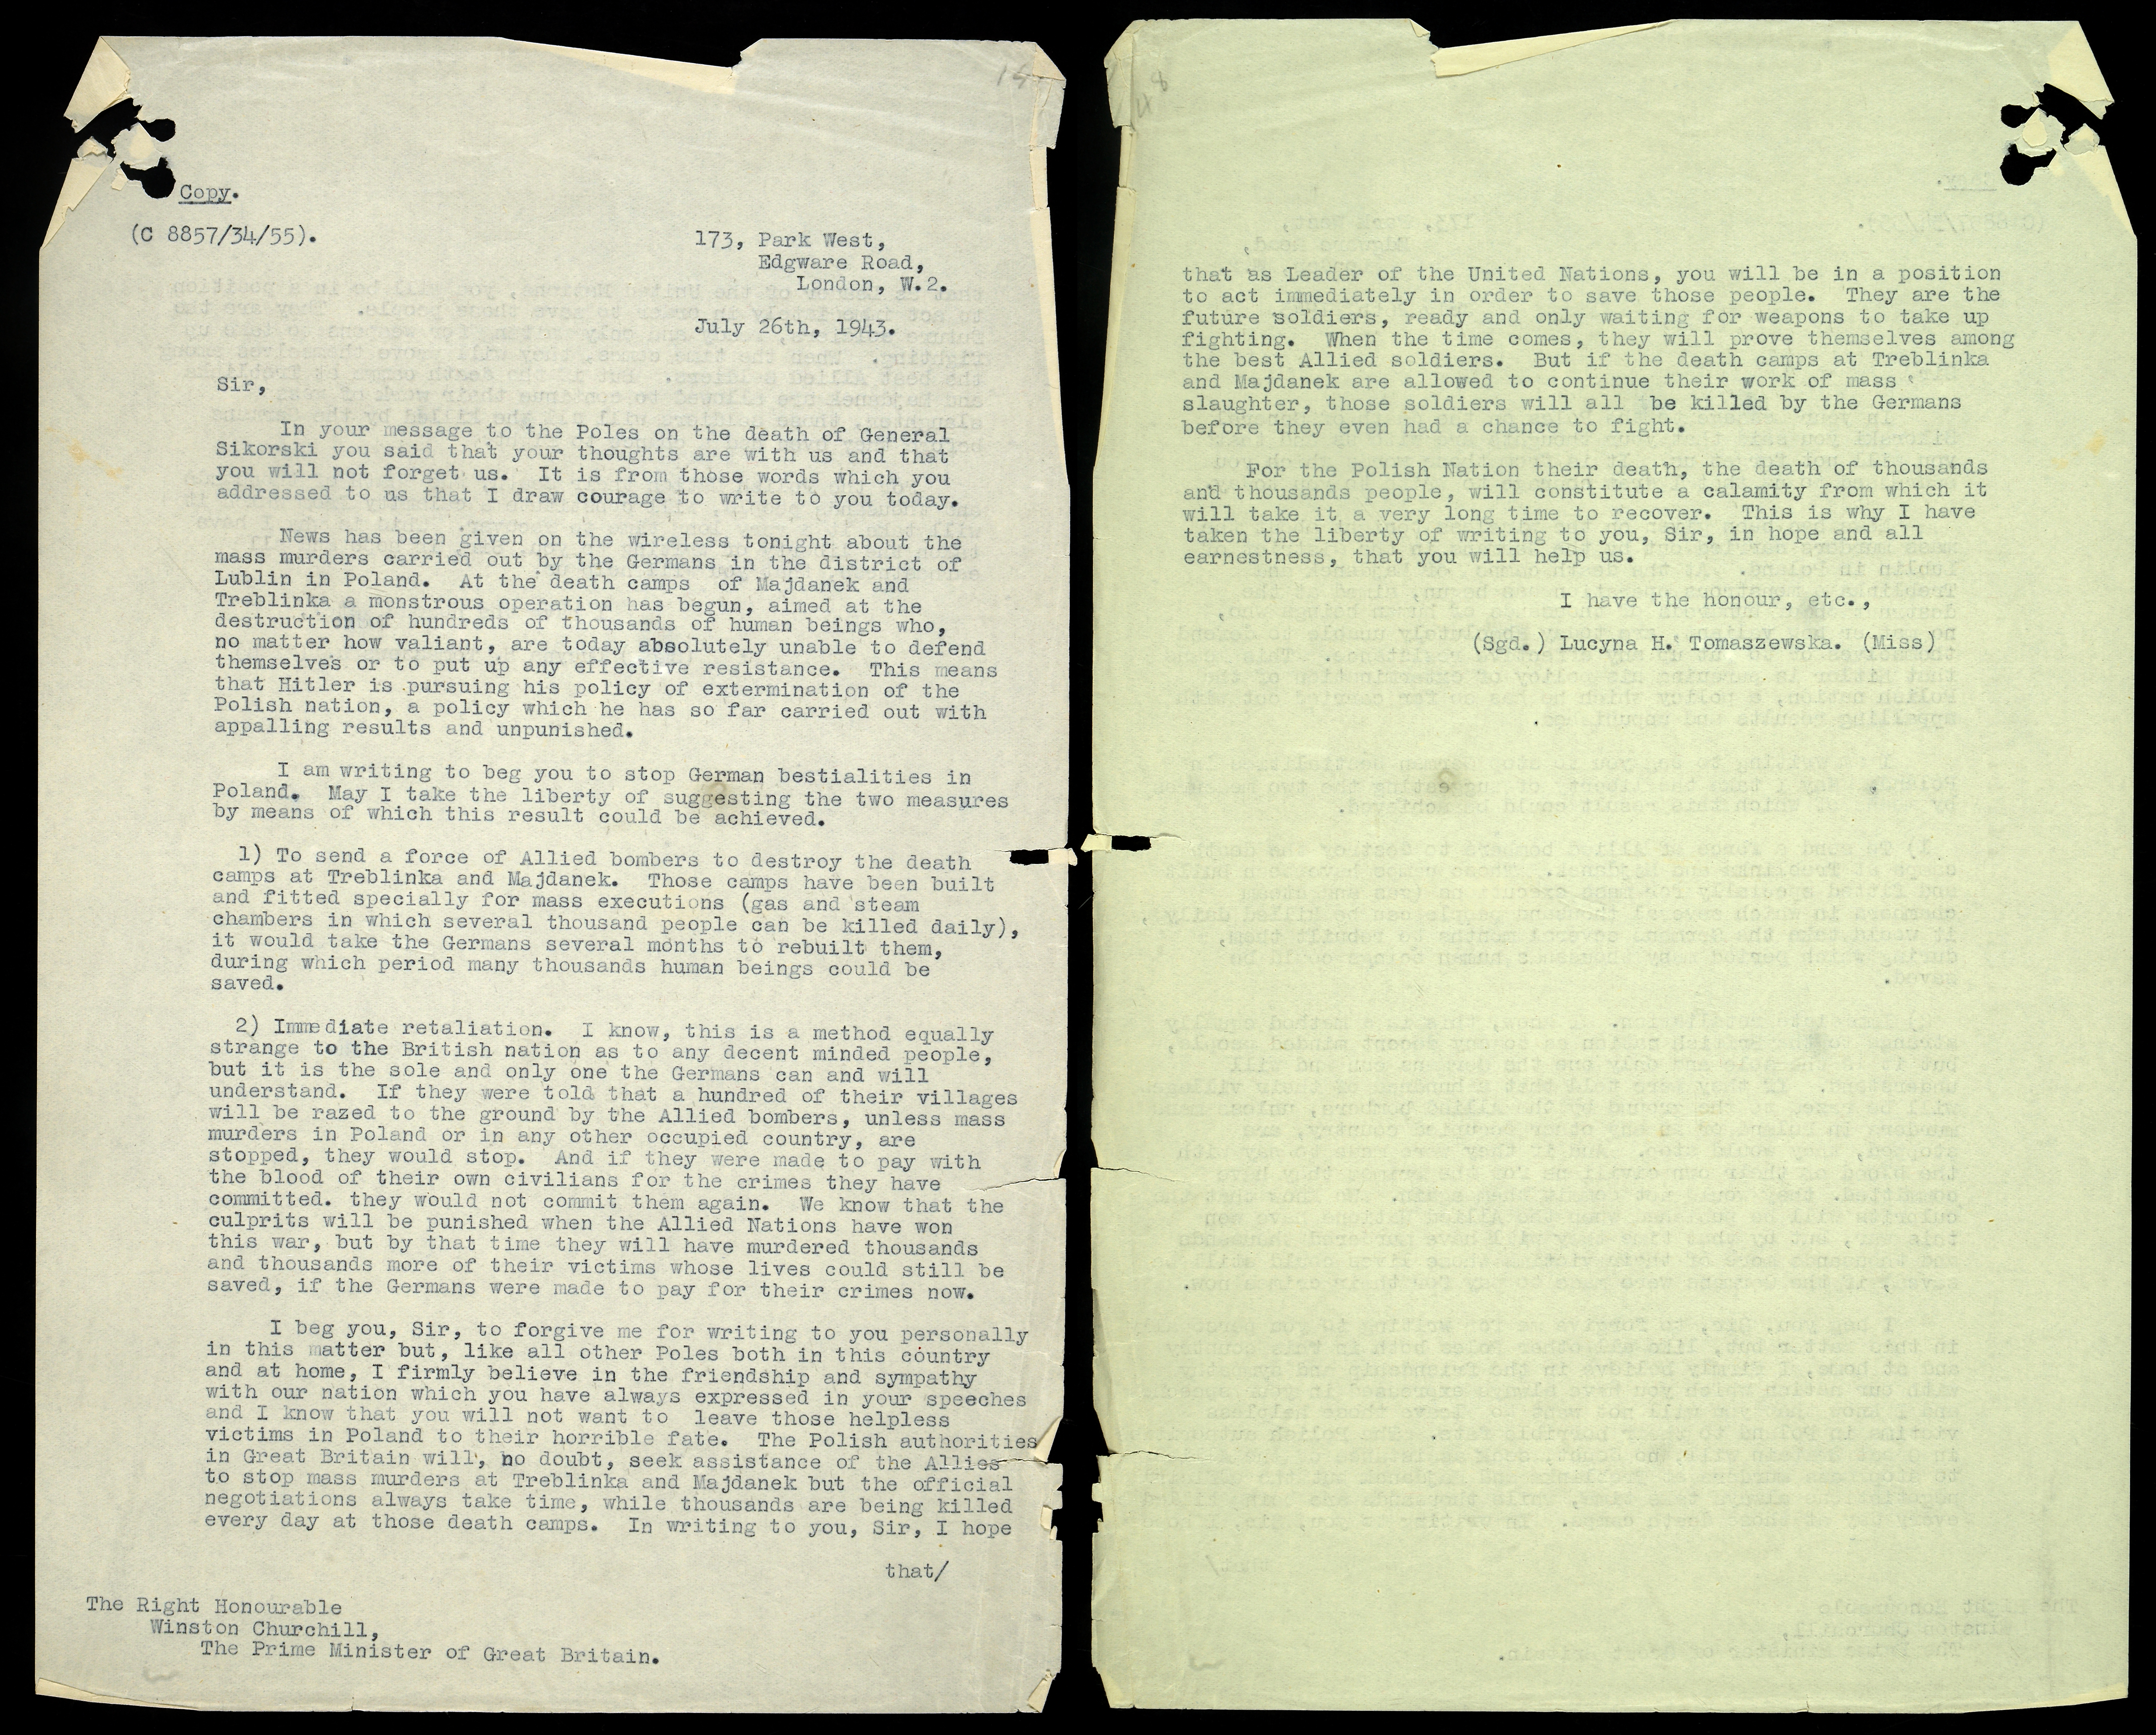 Letter to Churchill requestion action against the persecution of Jews